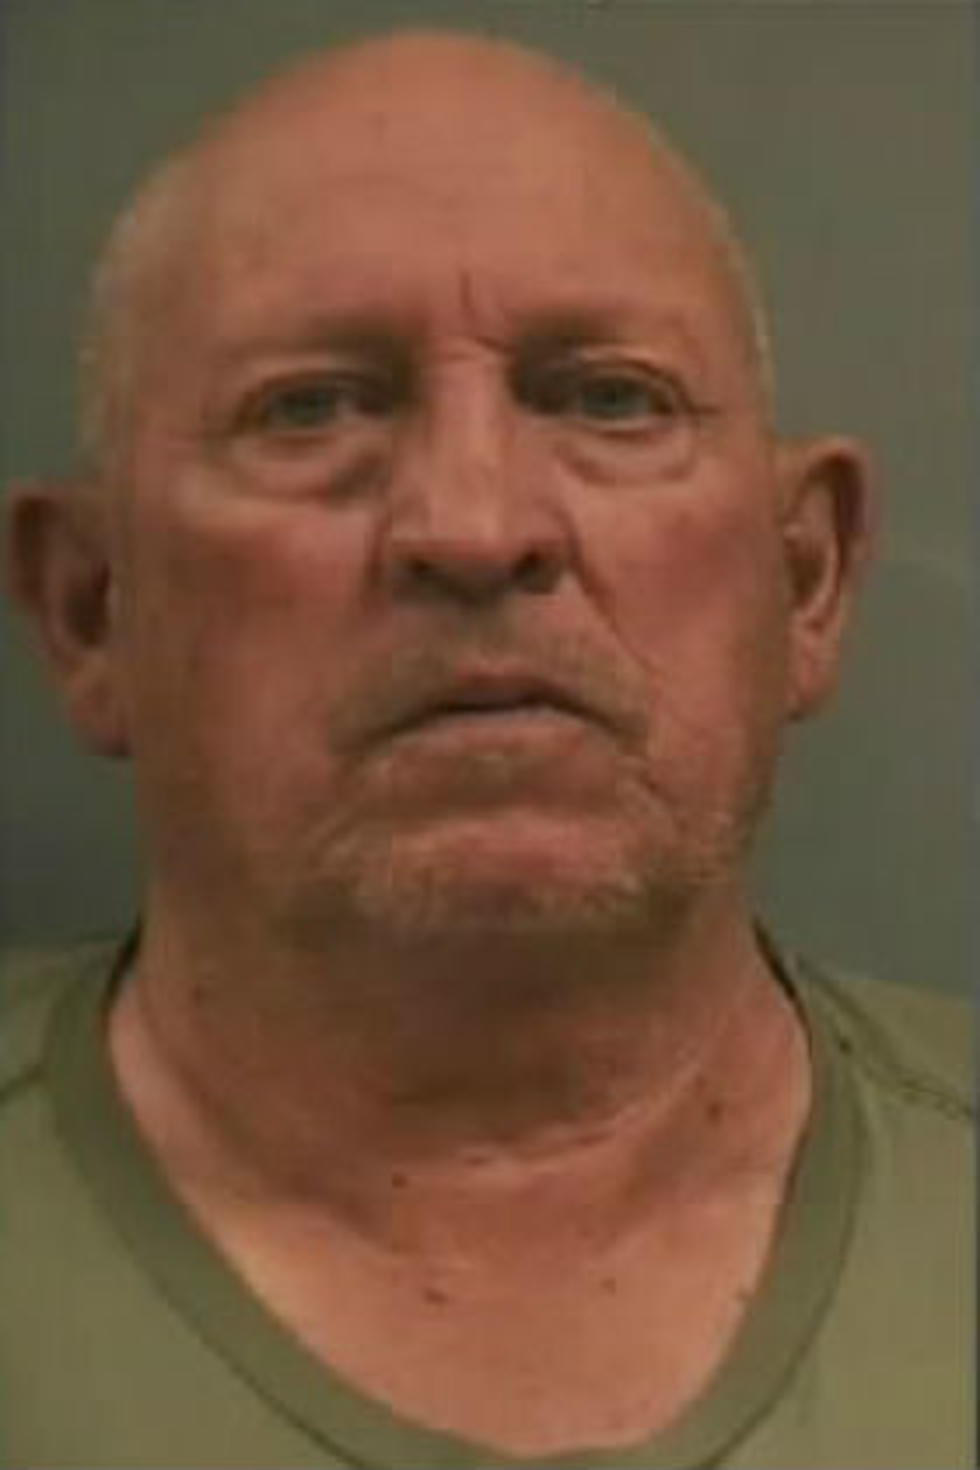 Lamb Pleads Not Guilty in Laramie Cold Case Murder